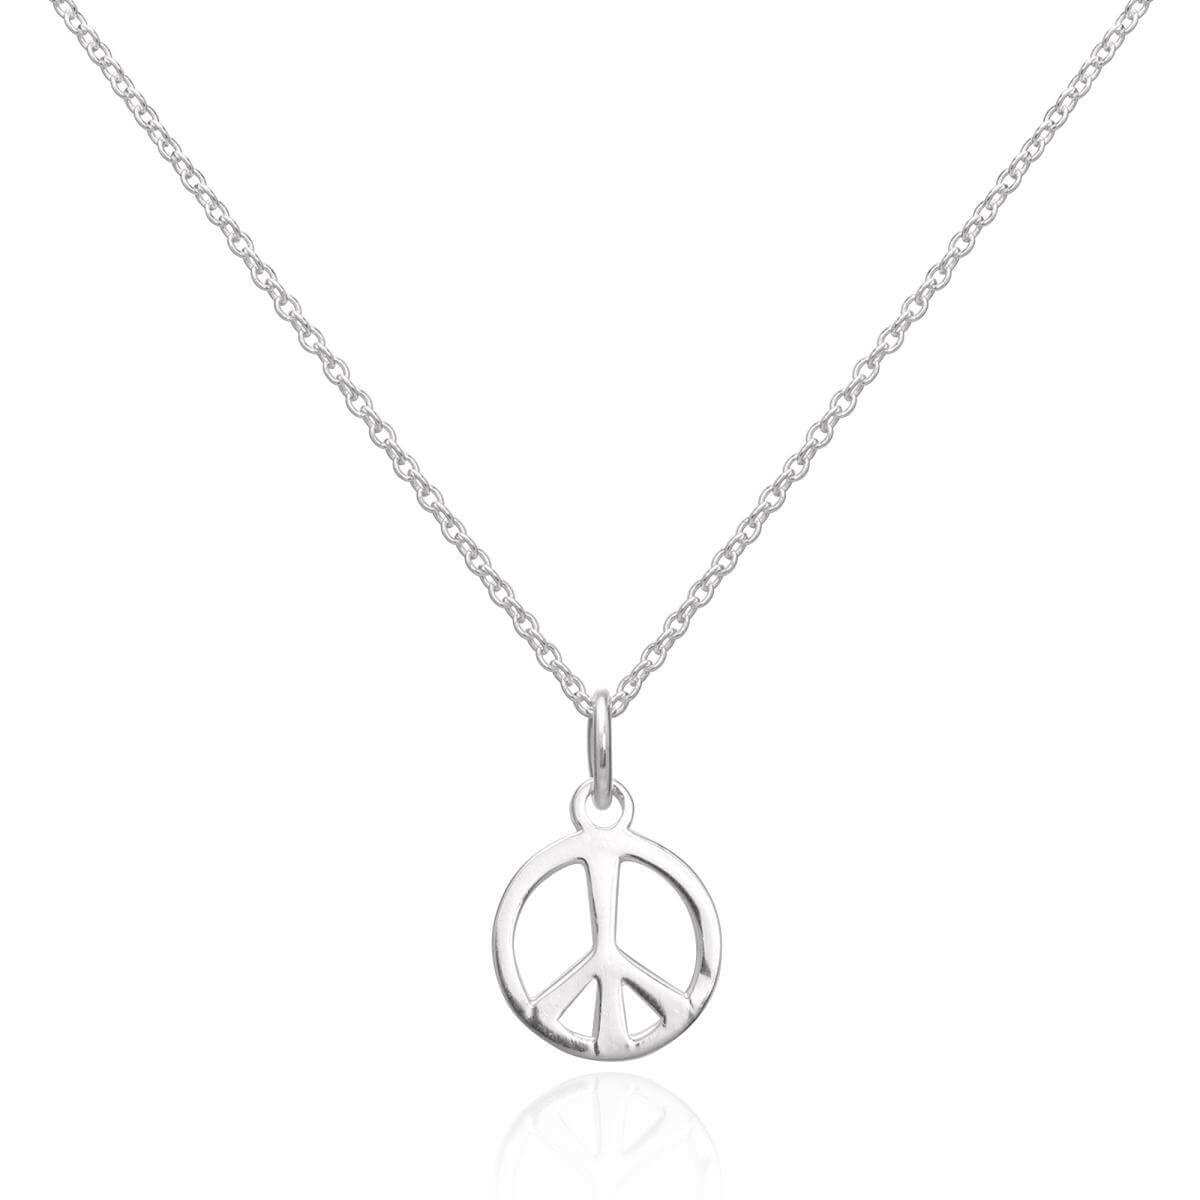 Sterling Silver Peace Sign Pendant Necklace 16 - 22 Inches